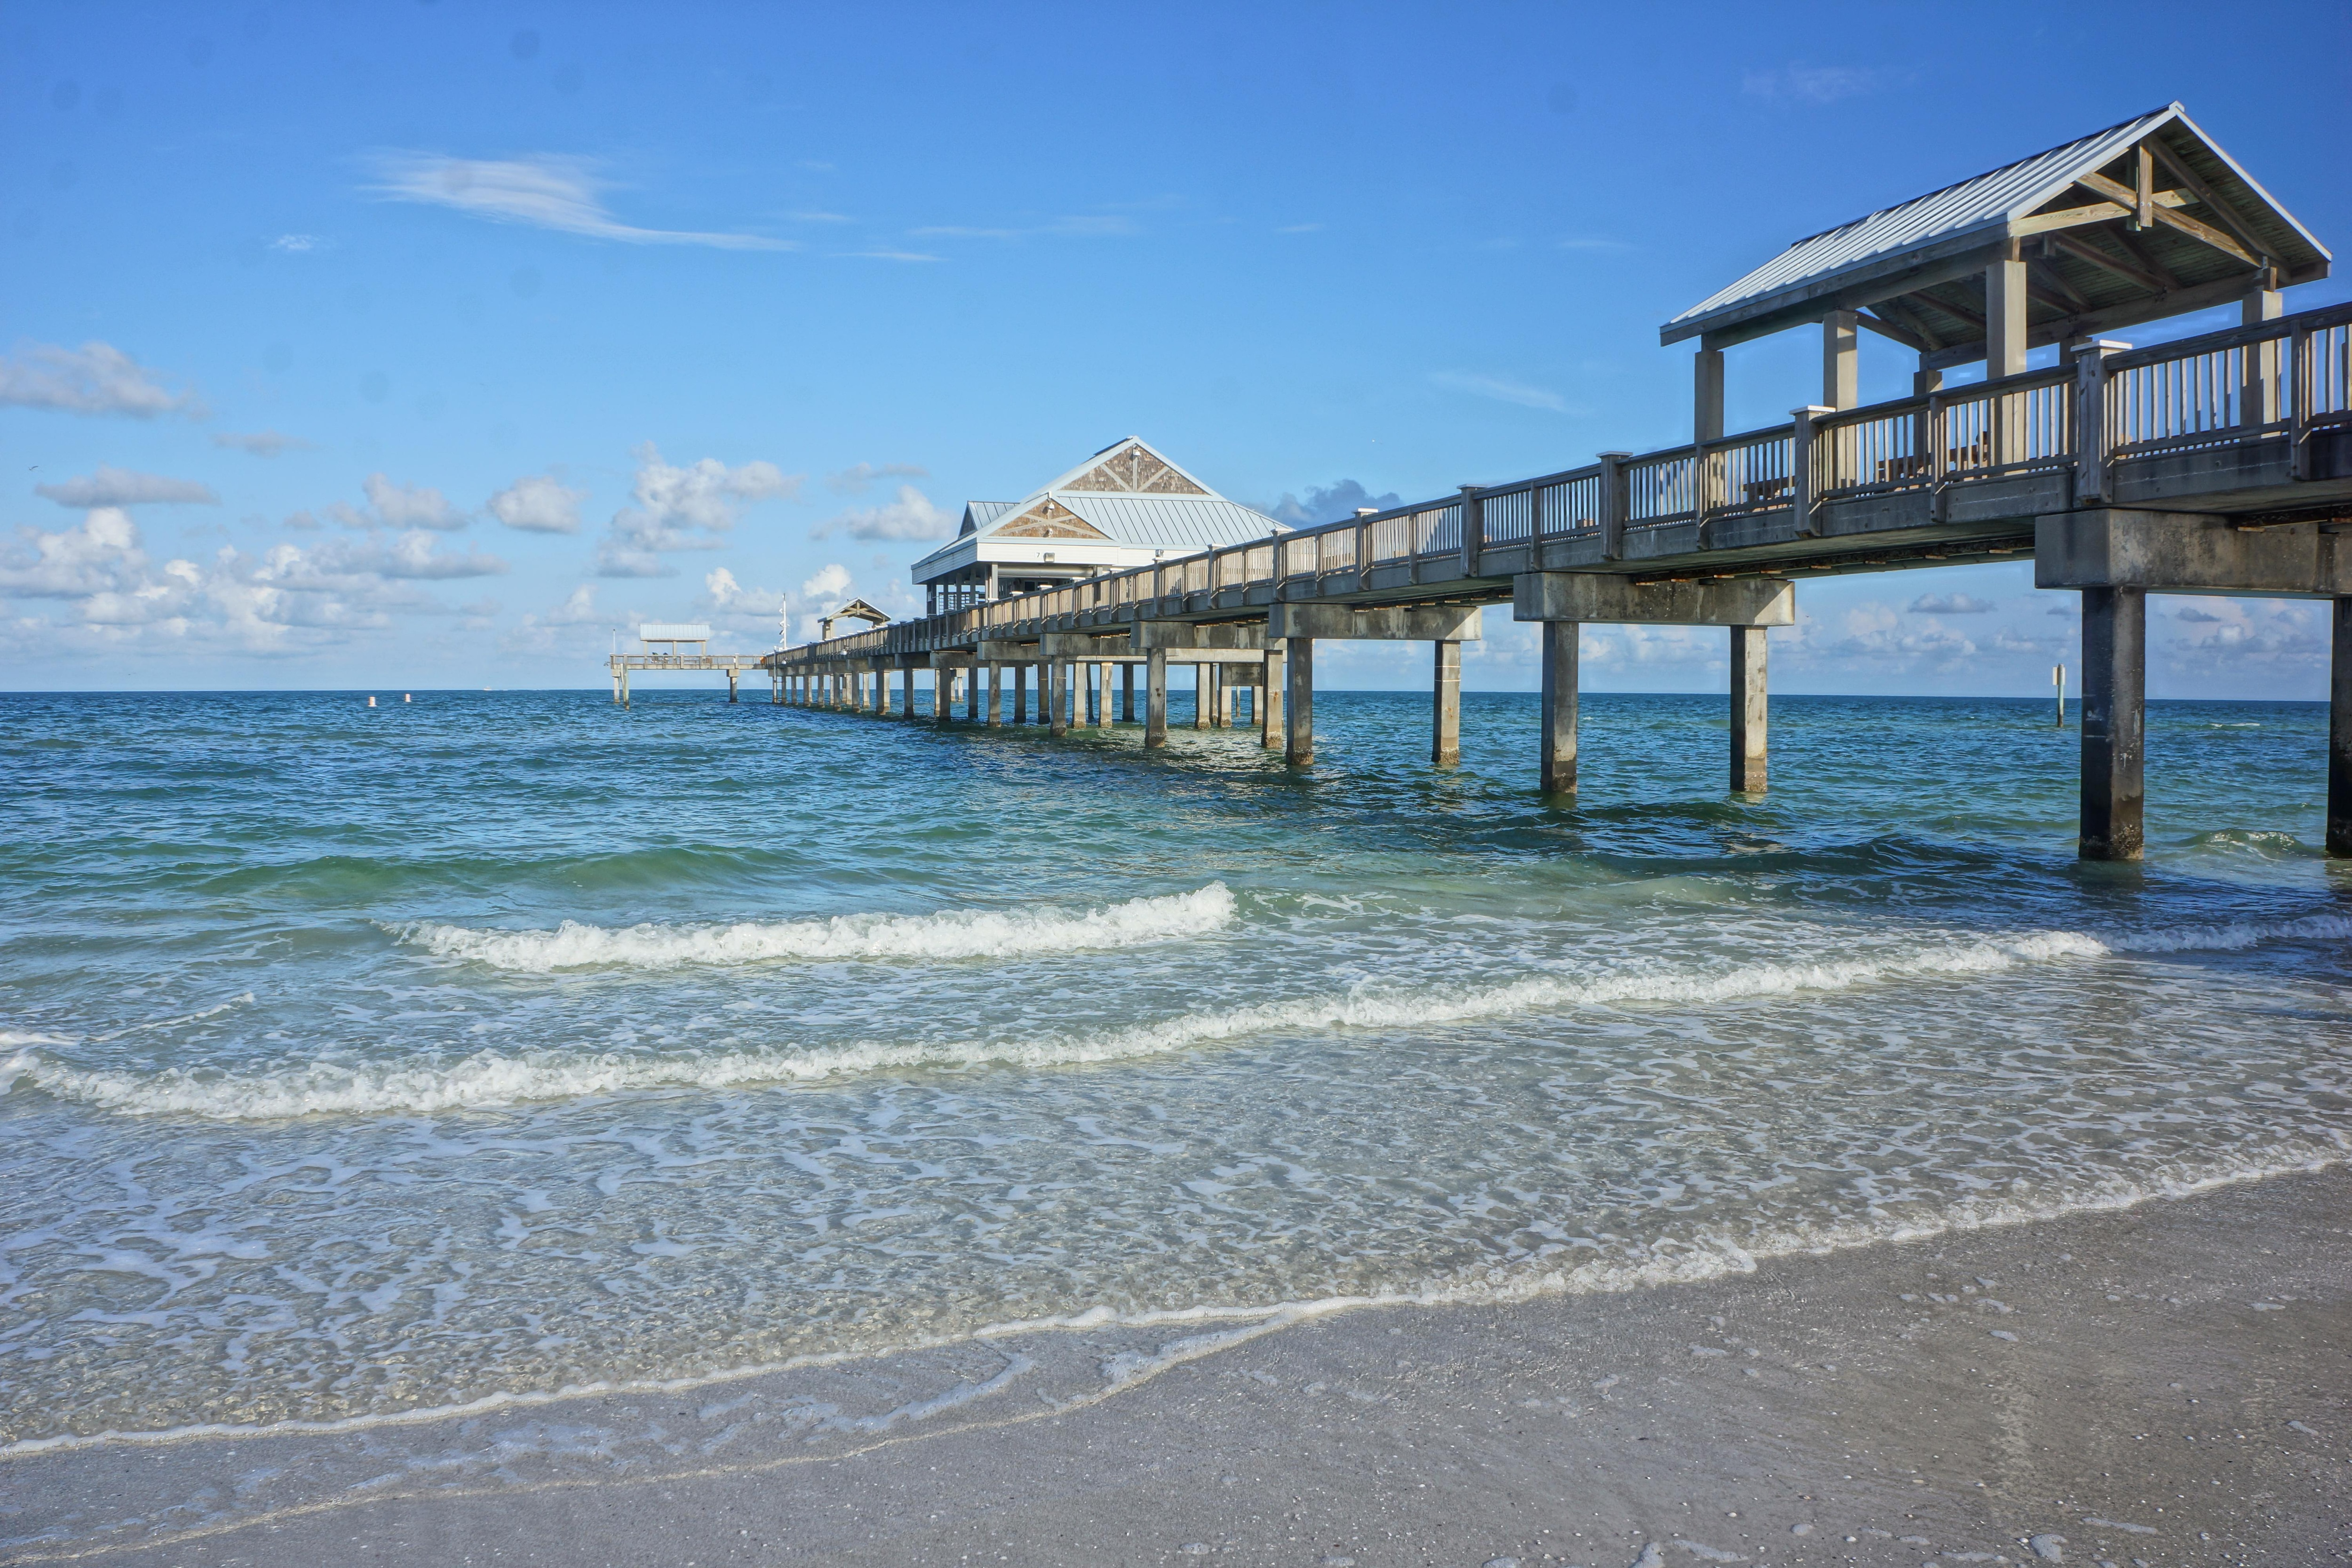 Dip your toes in the Gulf waters and explore numerous nearby piers.